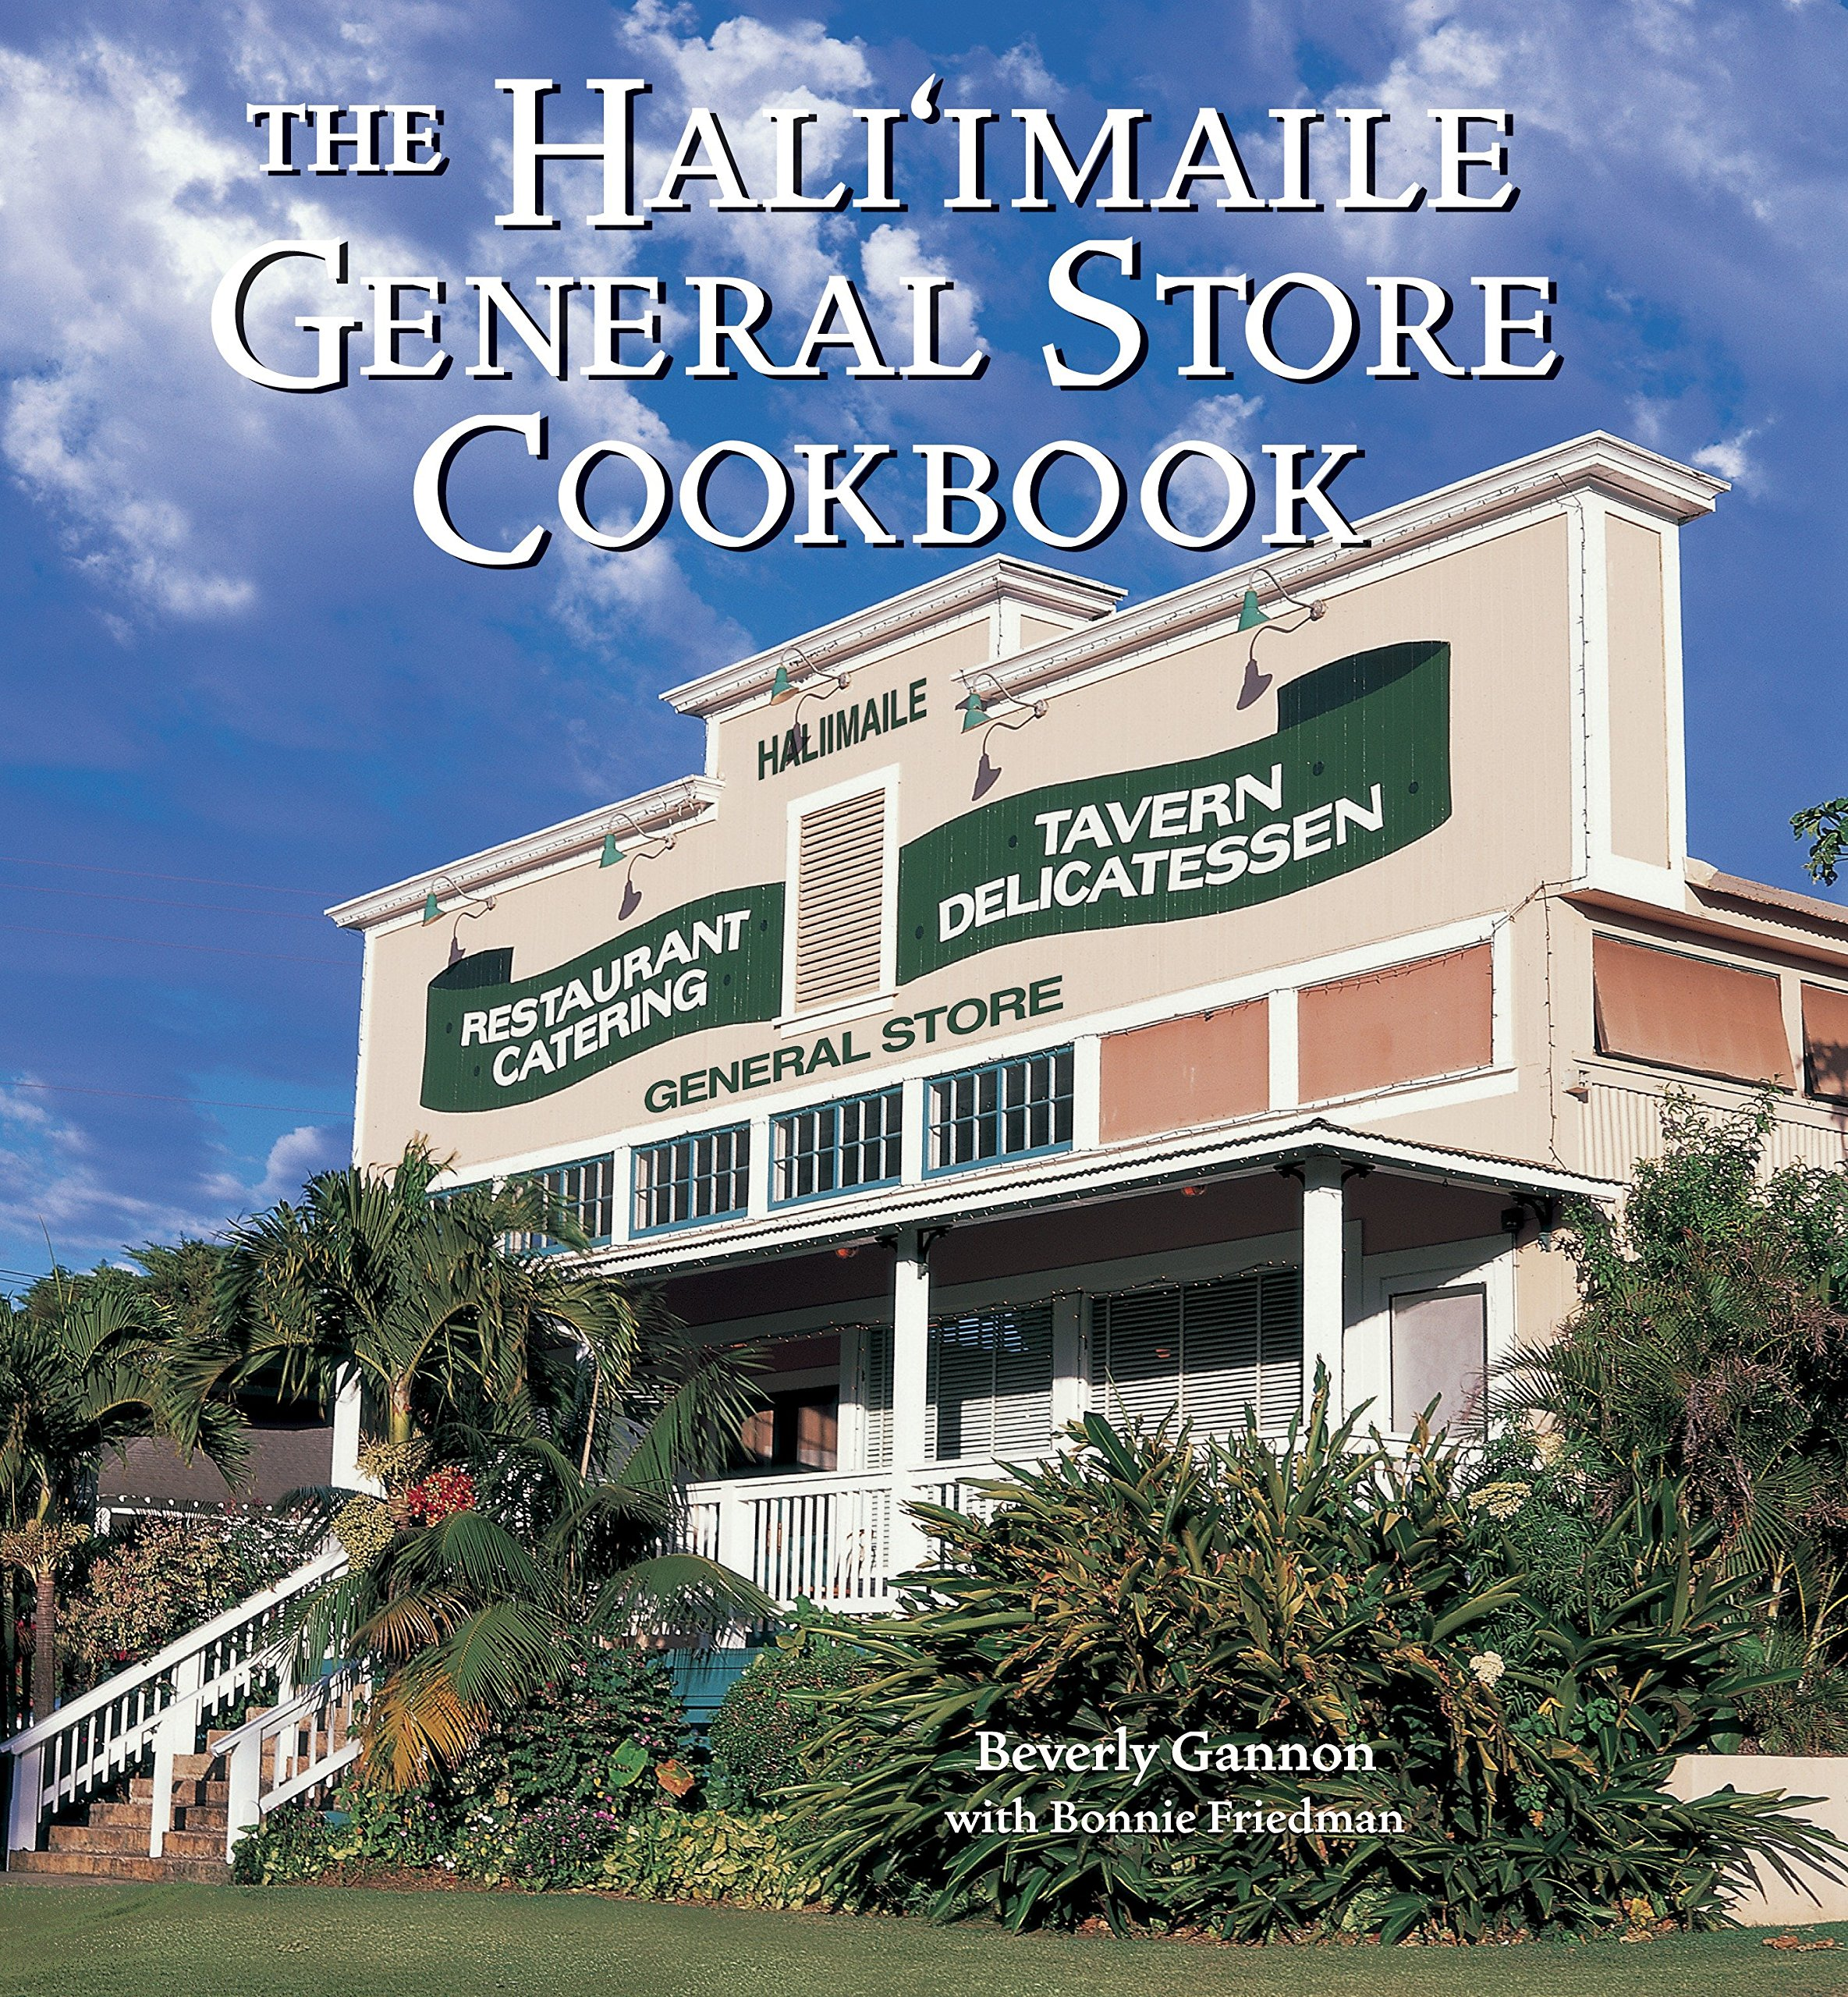 The Hali'imaile General Store Cookbook: Home Cooking from Maui pdf epub